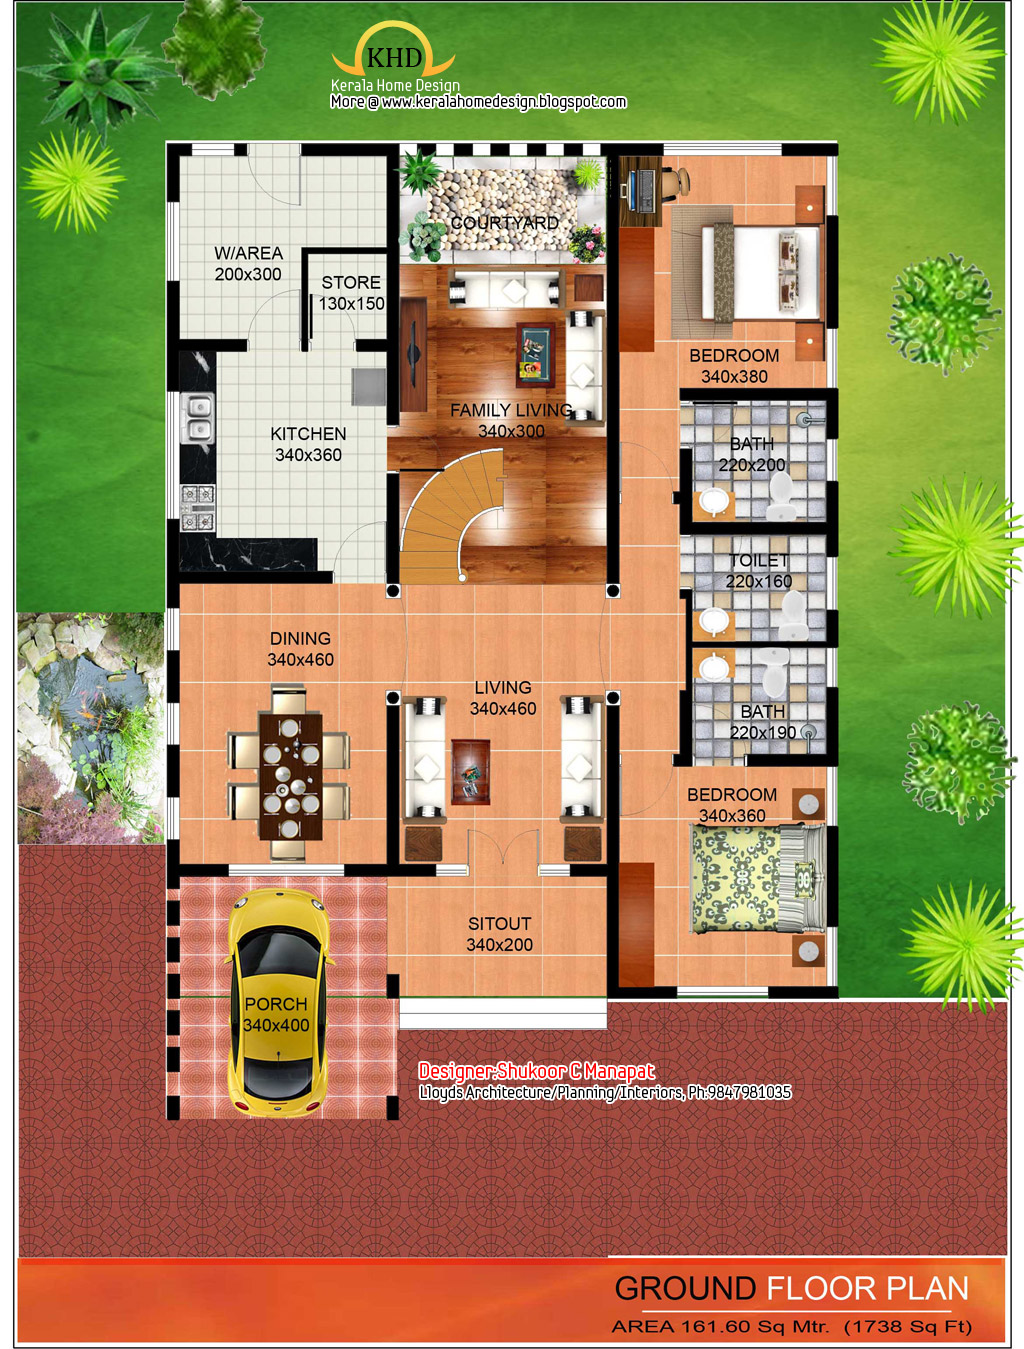 Fabulous 2563 Sq. Ft. Contemporary and Kerala Style Architecture 1024 x 1349 · 494 kB · jpeg